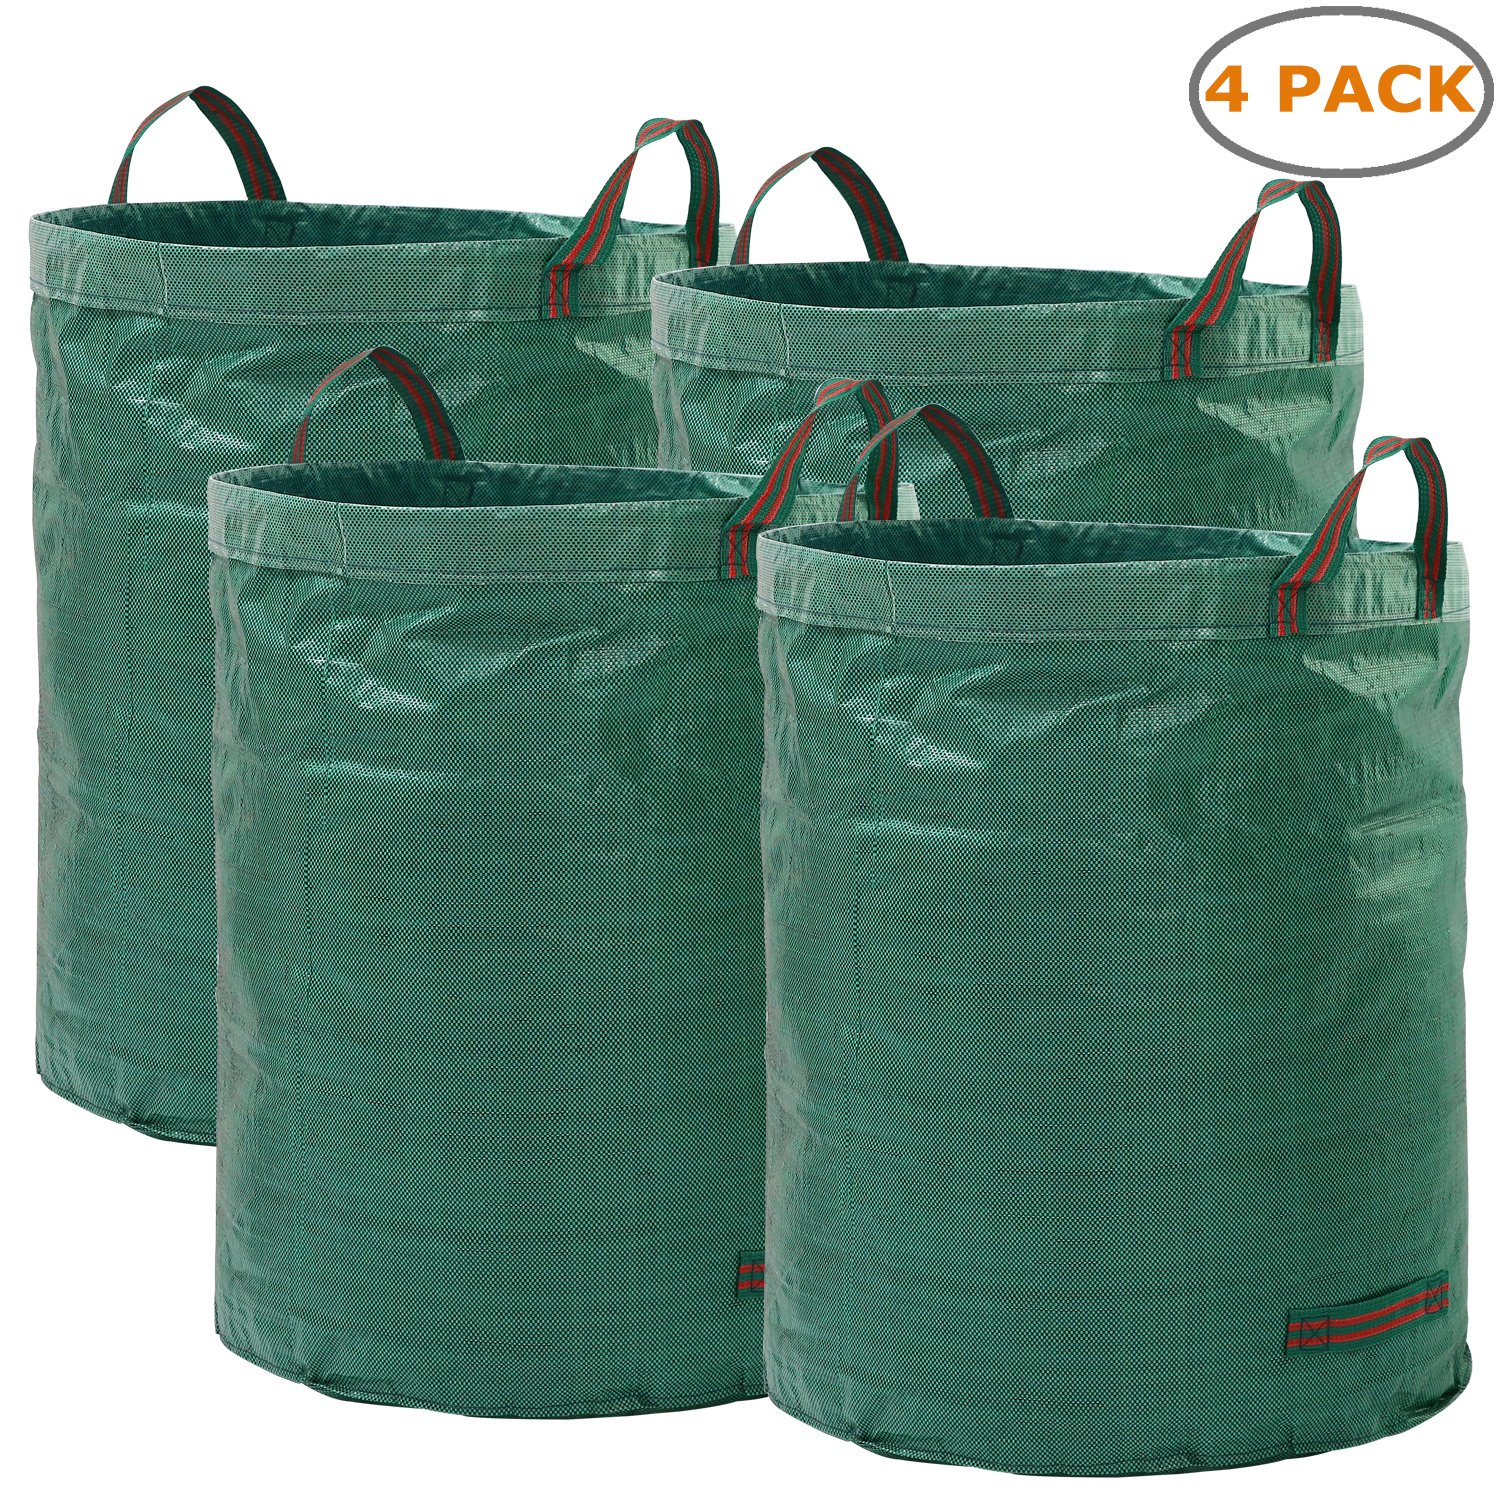 Ohuhu Garden Waste Bags 72 Gallons Reusable Yard Leaf Bag, Durable & Portable Garden Storage Bags With Dual Handles, 4 Pack by Ohuhu